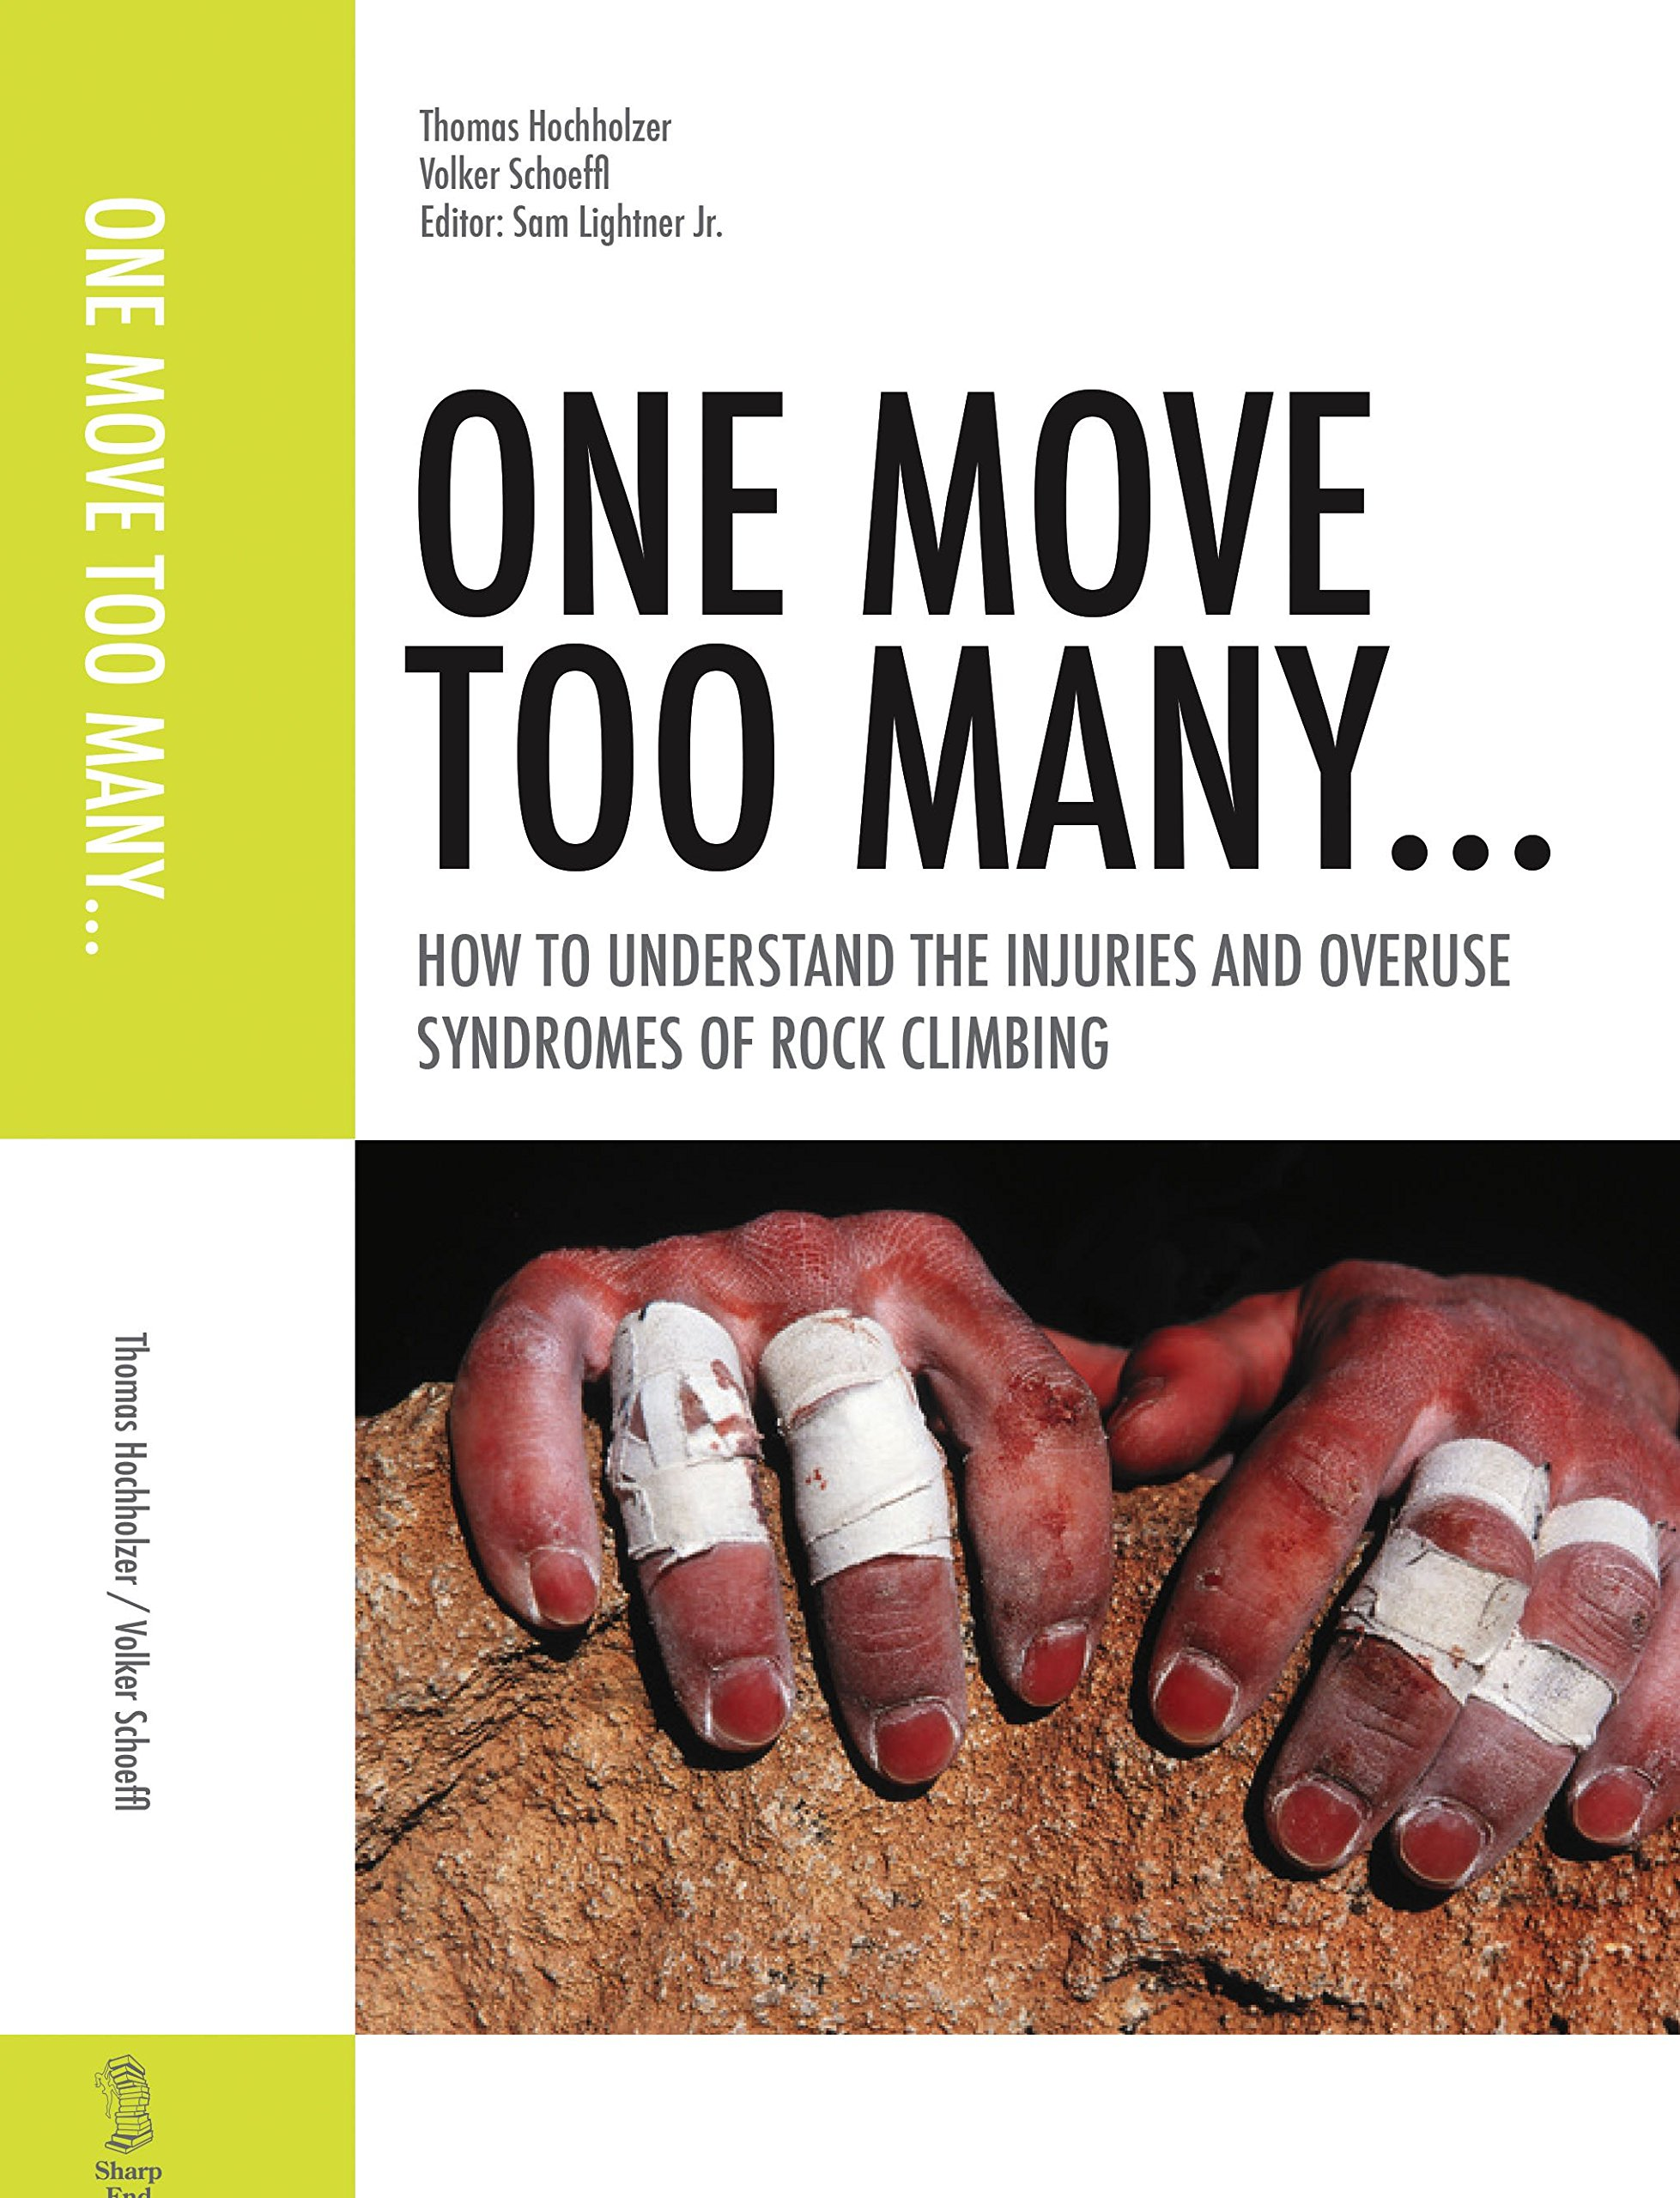 One Move Too Many. How to Understand the Injuries and Overuse Syndroms of Rock Climbing